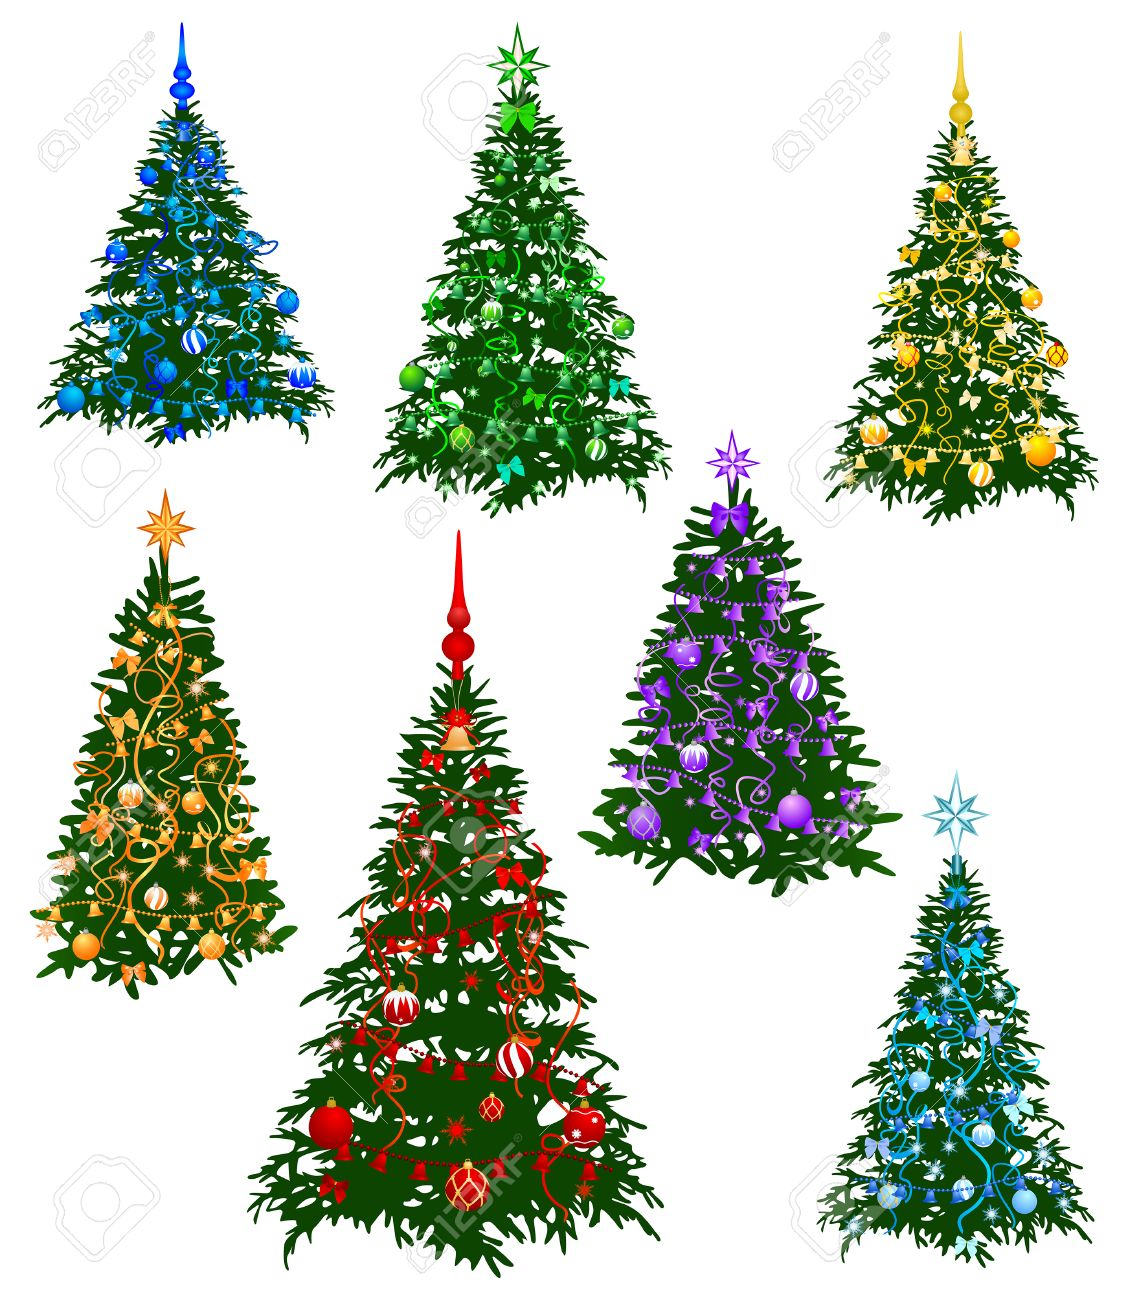 The Image Of The Seven Christmas Fur-tree Decorated By A Holiday ...